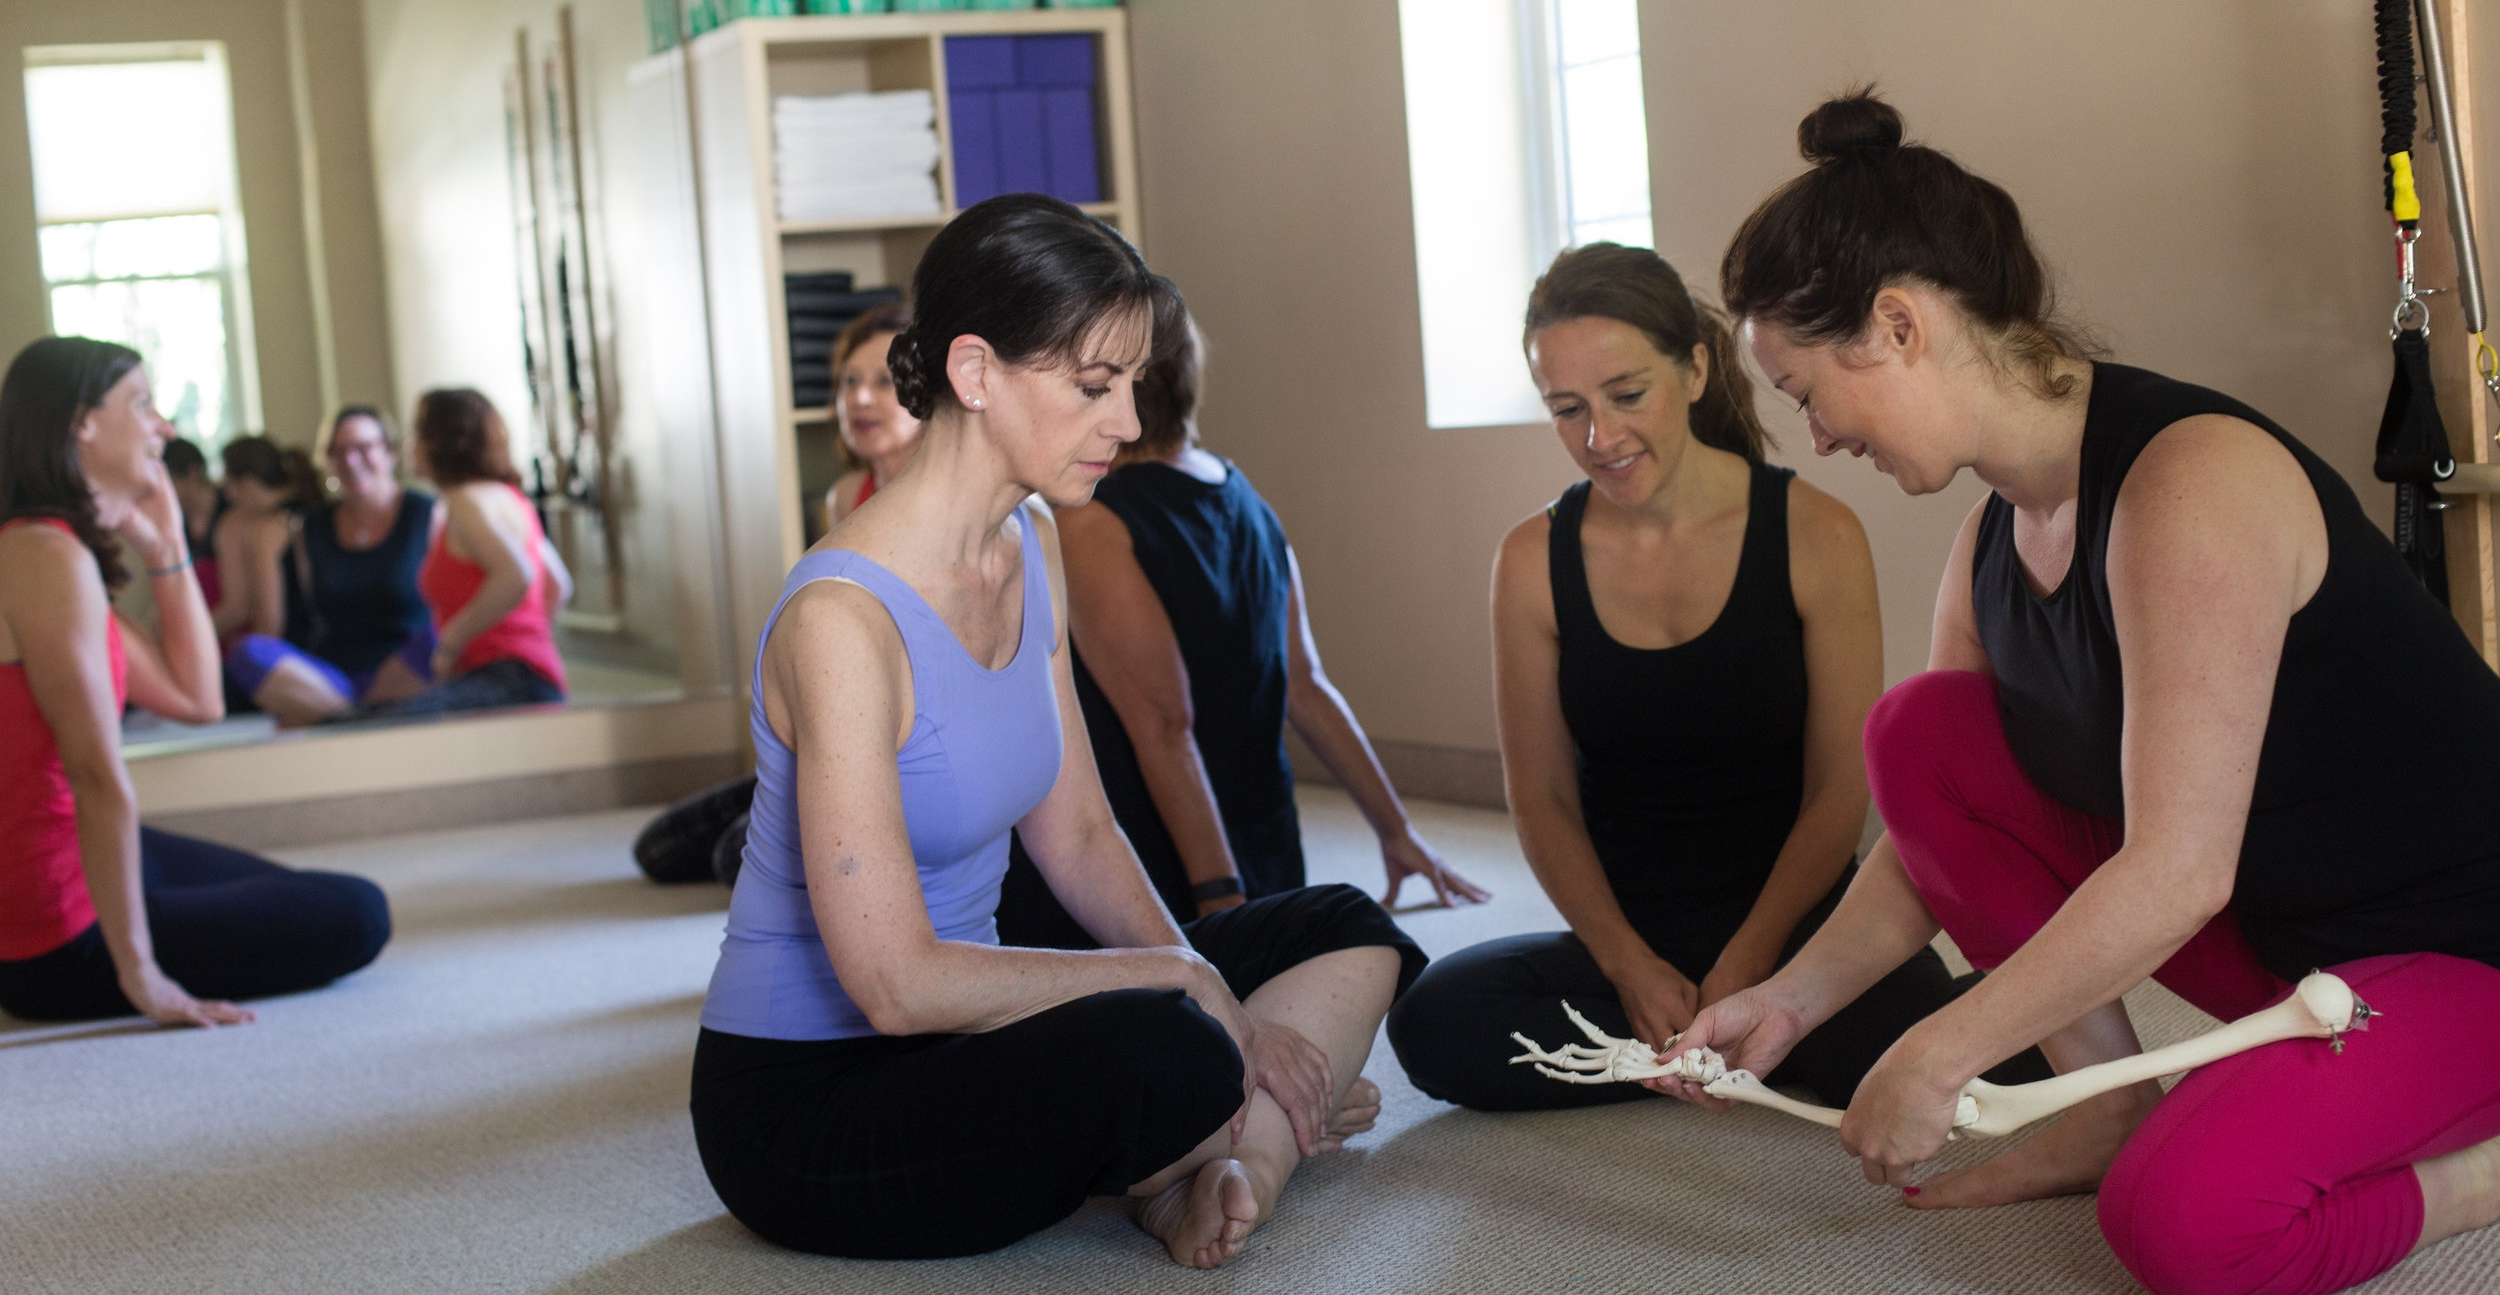 Whole Body Workshops - Feel Good, You Can!